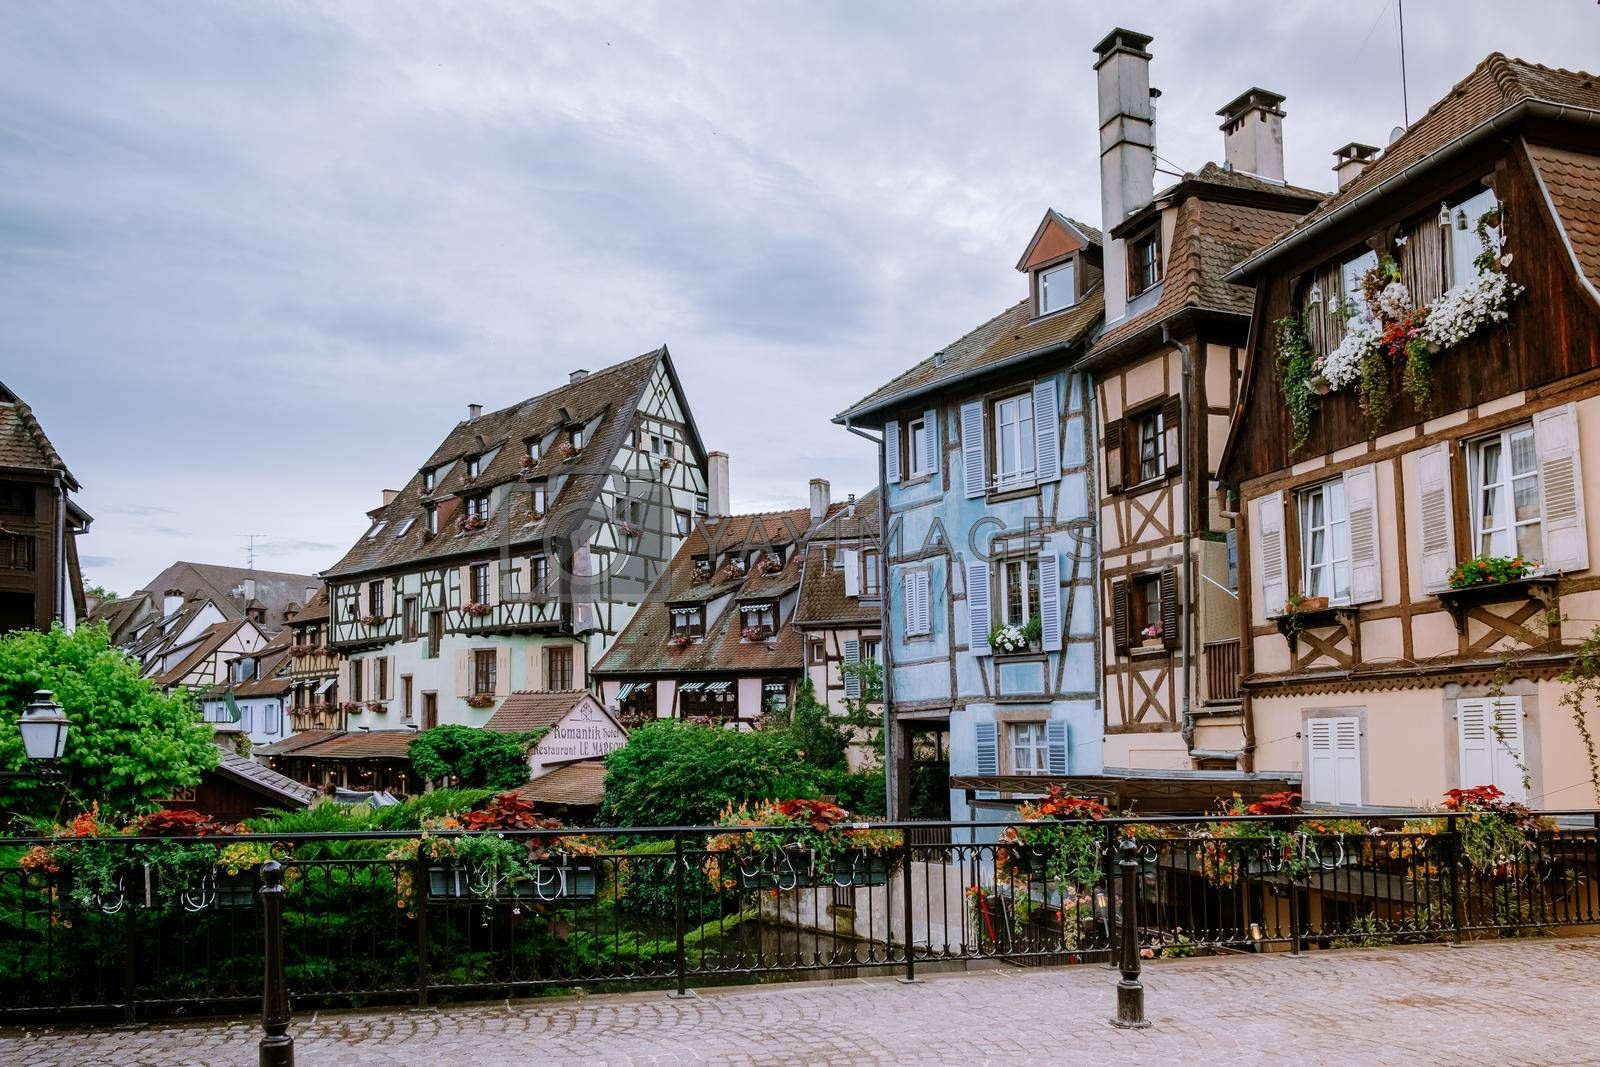 Colmar, Alsace, France. Petite Venice, water canal and traditional half timbered houses. Colmar is a charming town in Alsace, France. Beautiful view of colorful romantic city Colmar